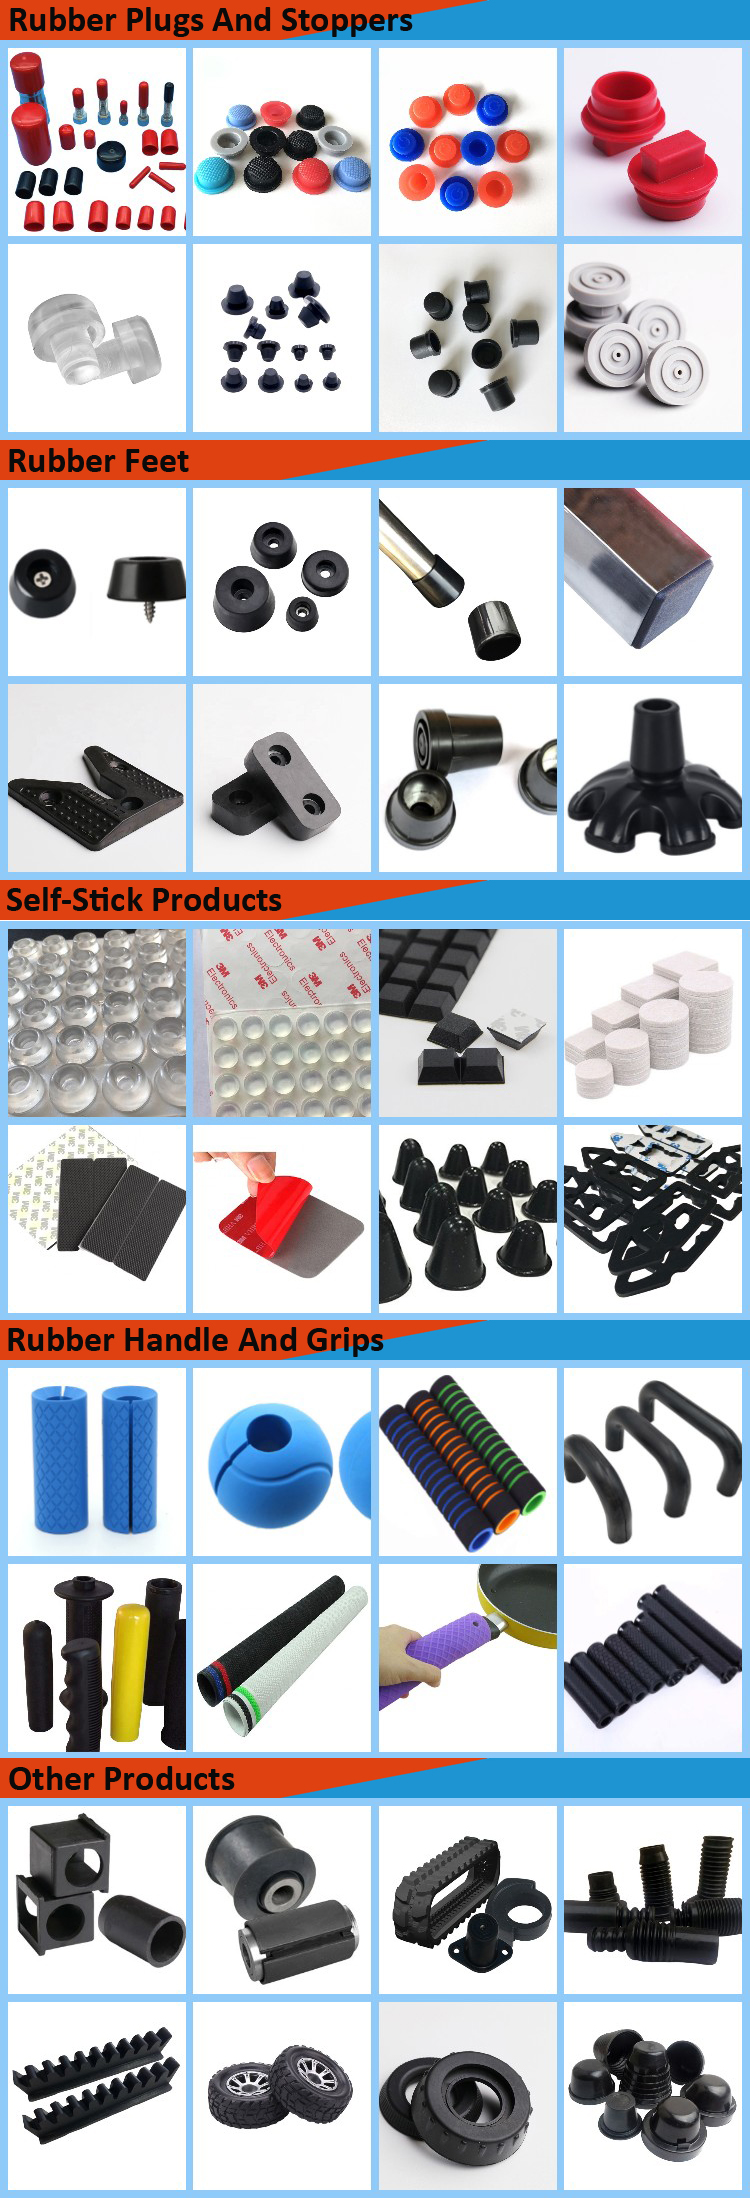 Rubber Products II.jpg